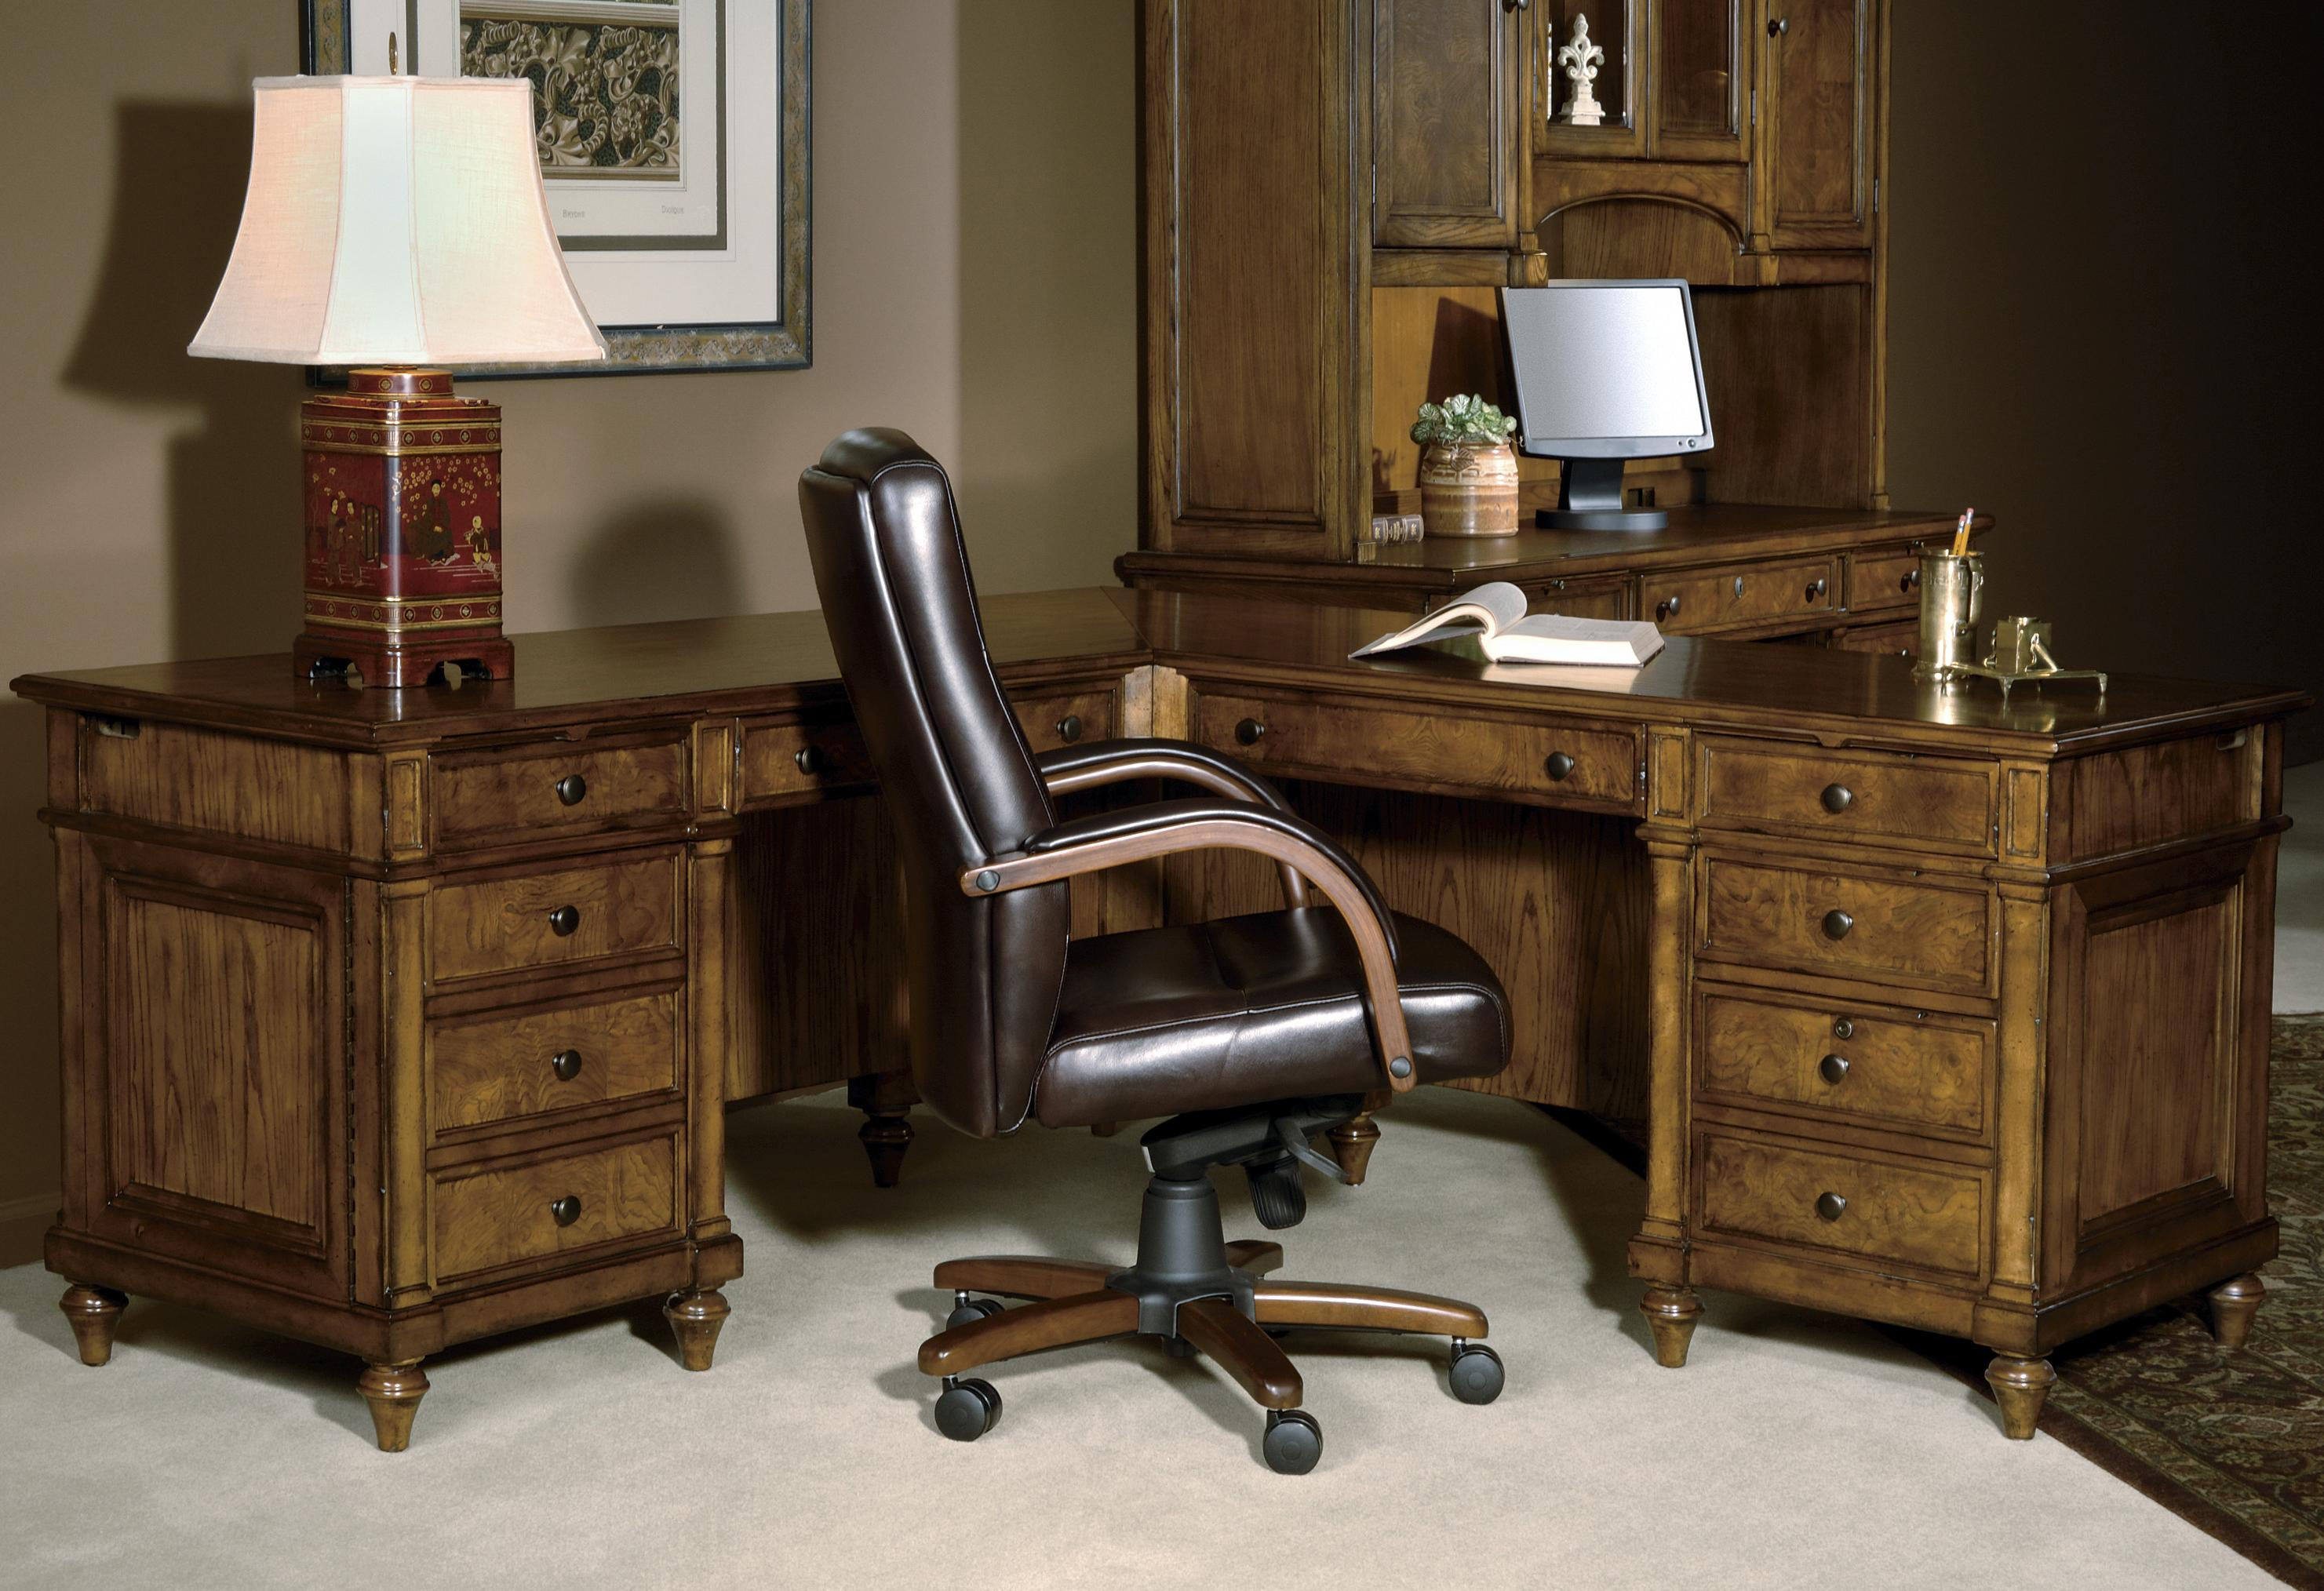 7-9000 Executive L-Desk by Hekman at Esprit Decor Home Furnishings